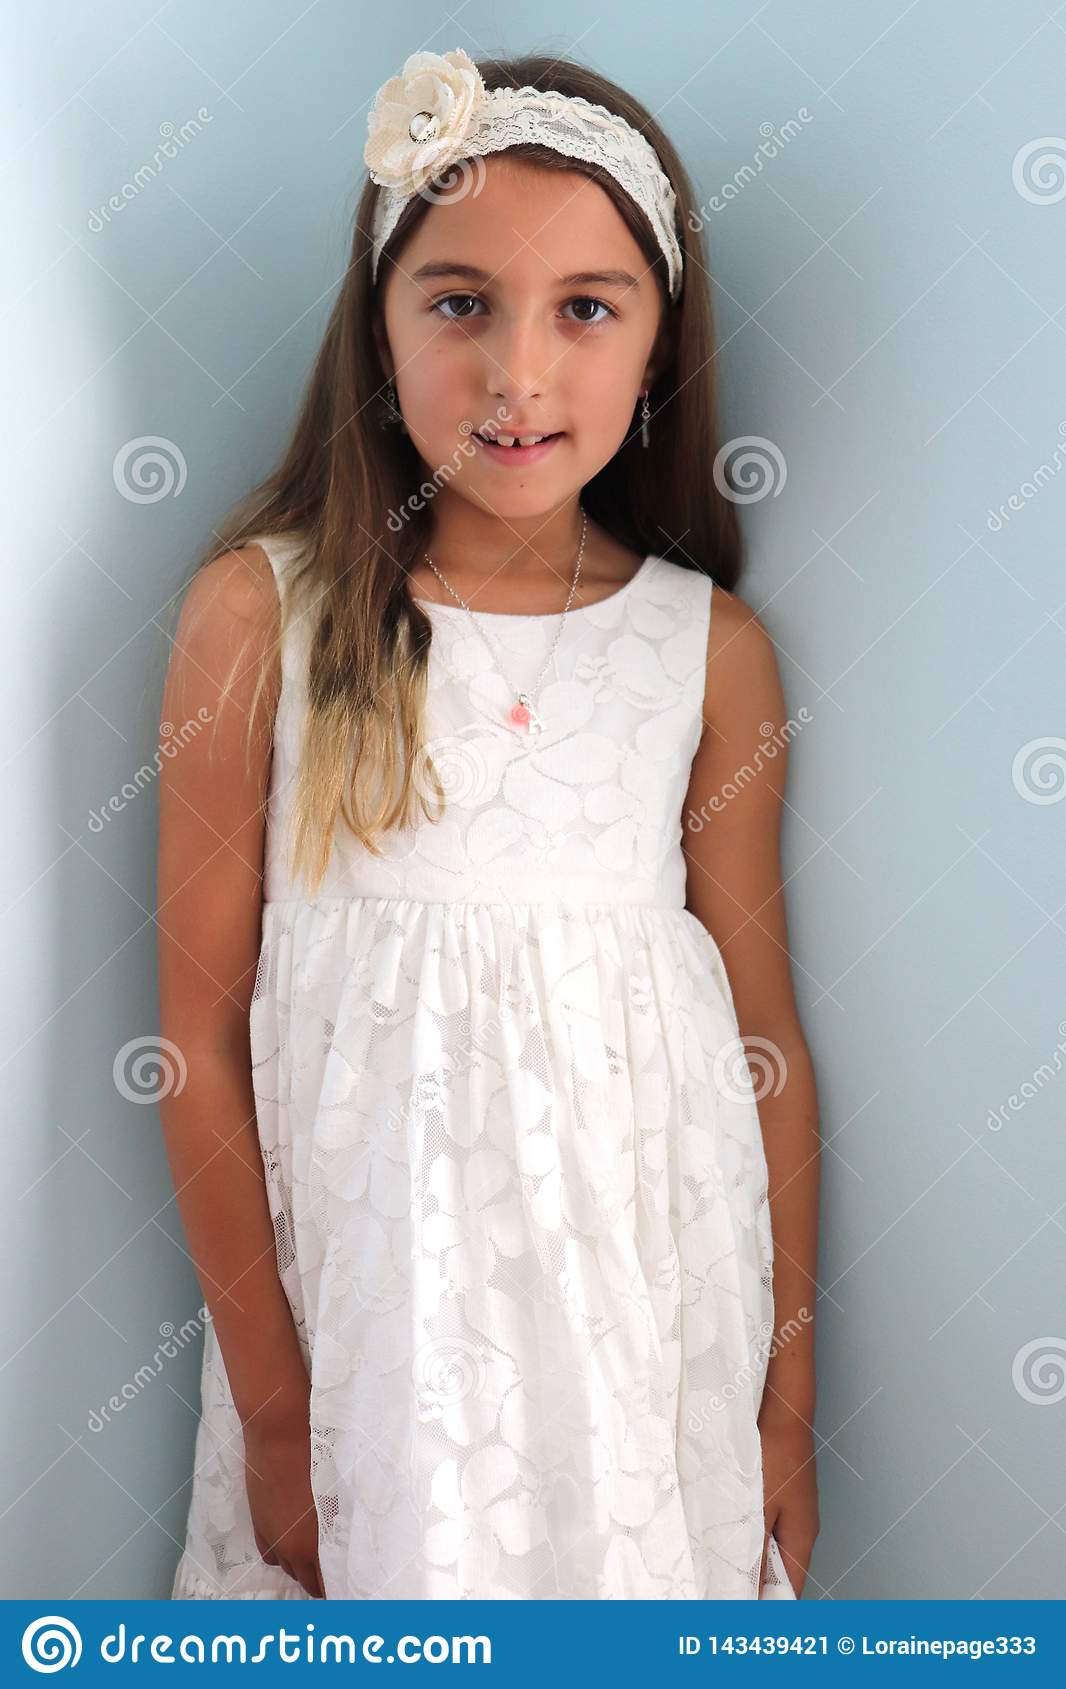 Girl Models White Dress, White Headband With Flower